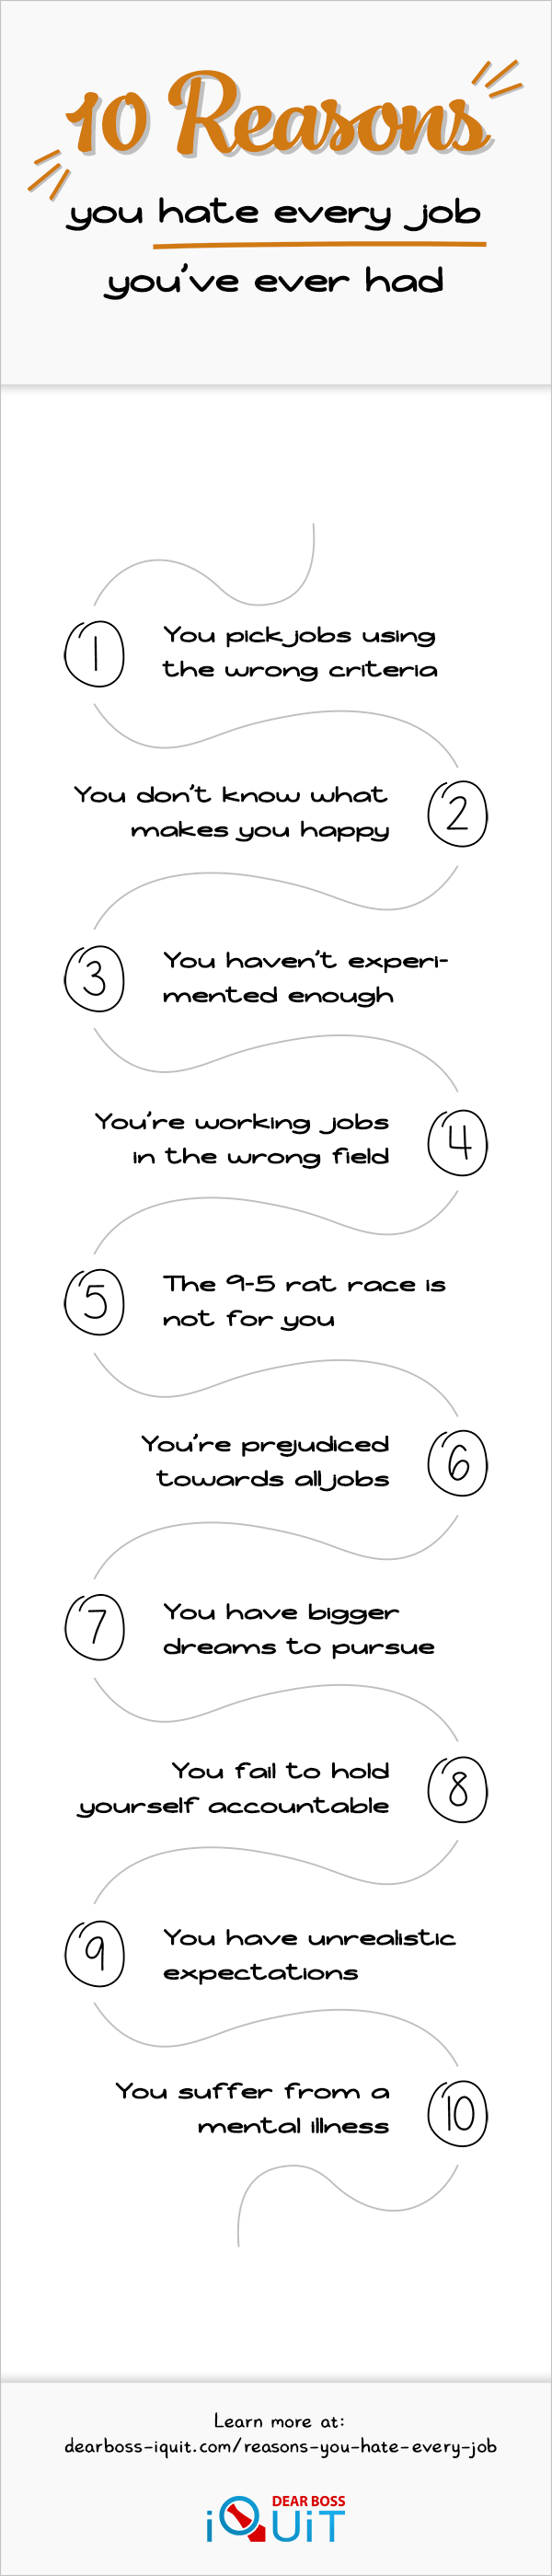 Reasons You Hate Every Job You've Ever Had Infographic